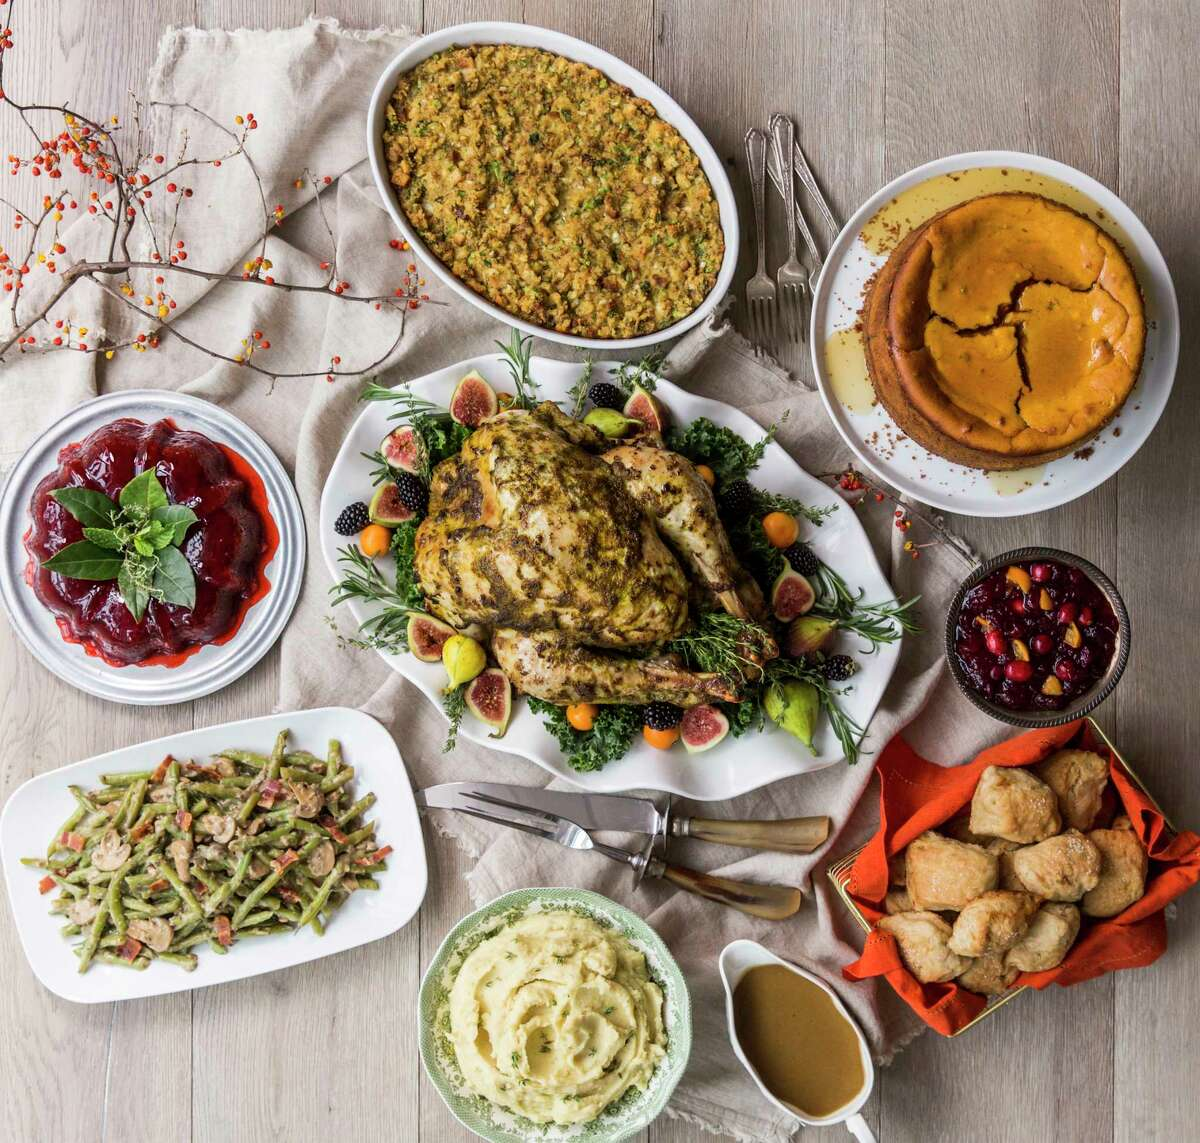 Herb Roasted Turkey in Three Steps and Perfect Turkey Gravy with sides including One Hour Rolls, Green Beans Oregano, Pumpkin Cheesecake, Mashed Potatoes, Cherry Brandy Mincemeat Mold and Grandmother's Favorite Dressing. Styled by Carla Buerkle.